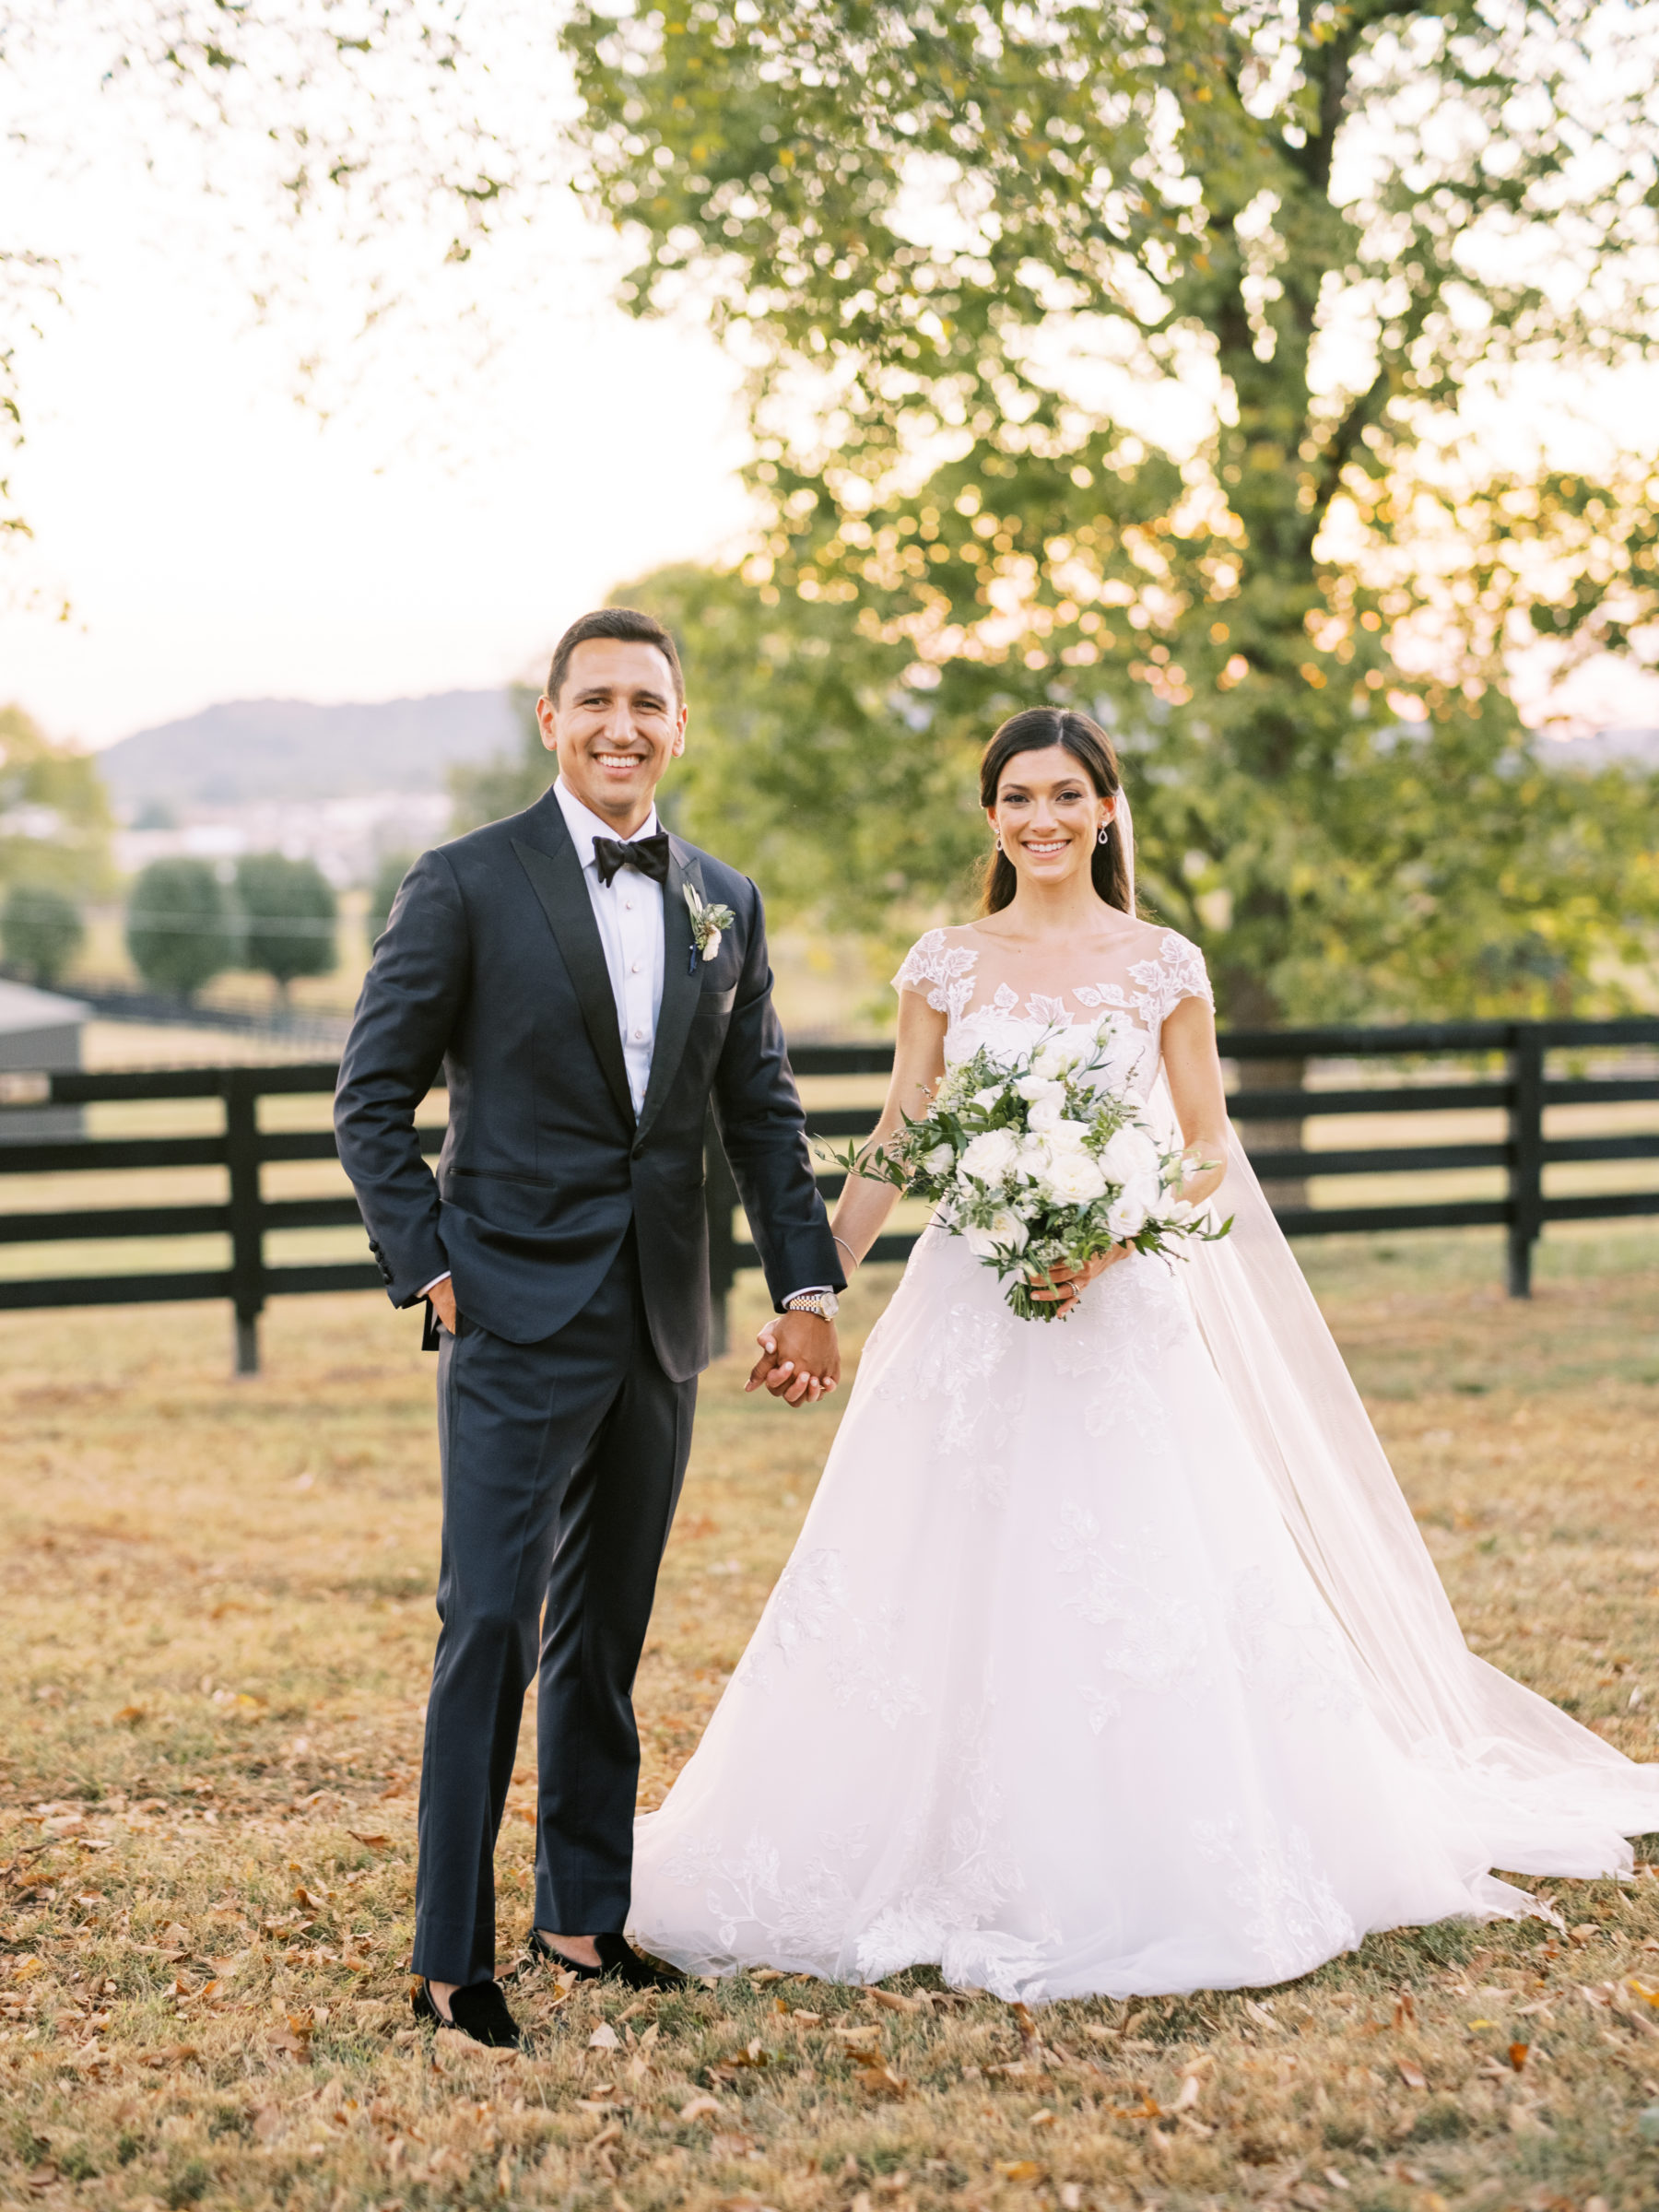 Fall wedding portrait by Nathan Westerfield wedding photographer featured on Nashvilel Bride Guide